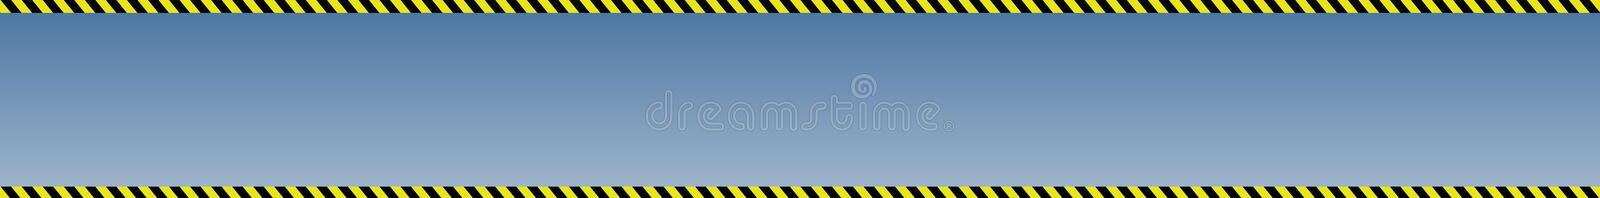 Blue background with banner with borders from black and yellow construction signal tape stock photography